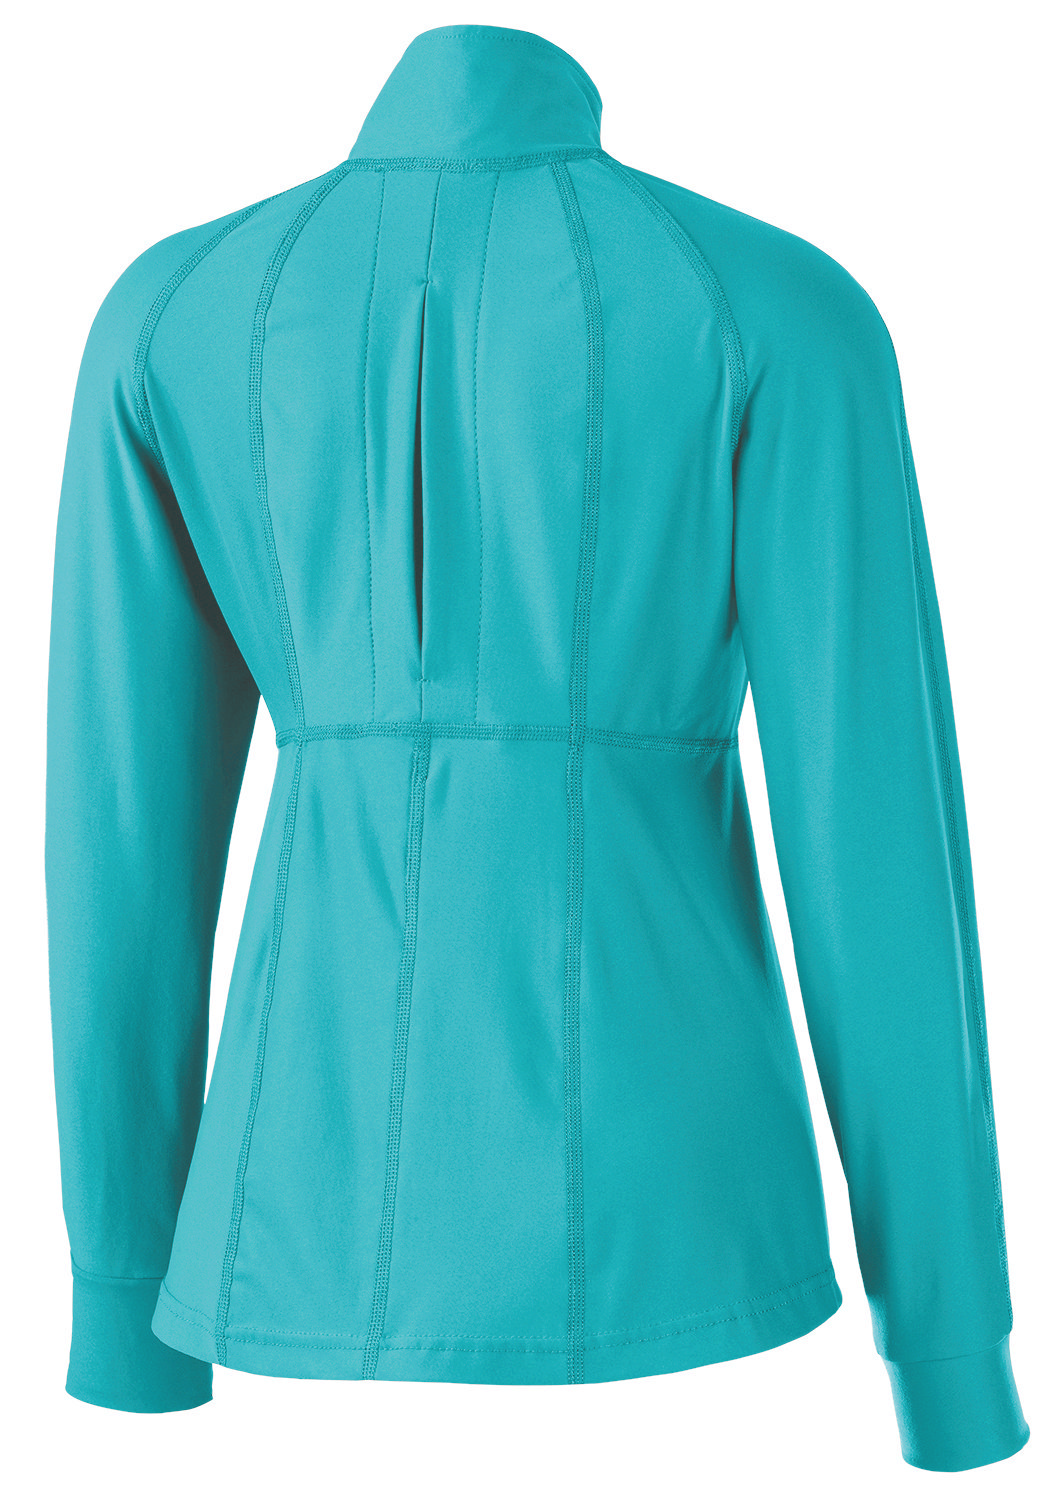 Irideon Women's Synergy Jacket